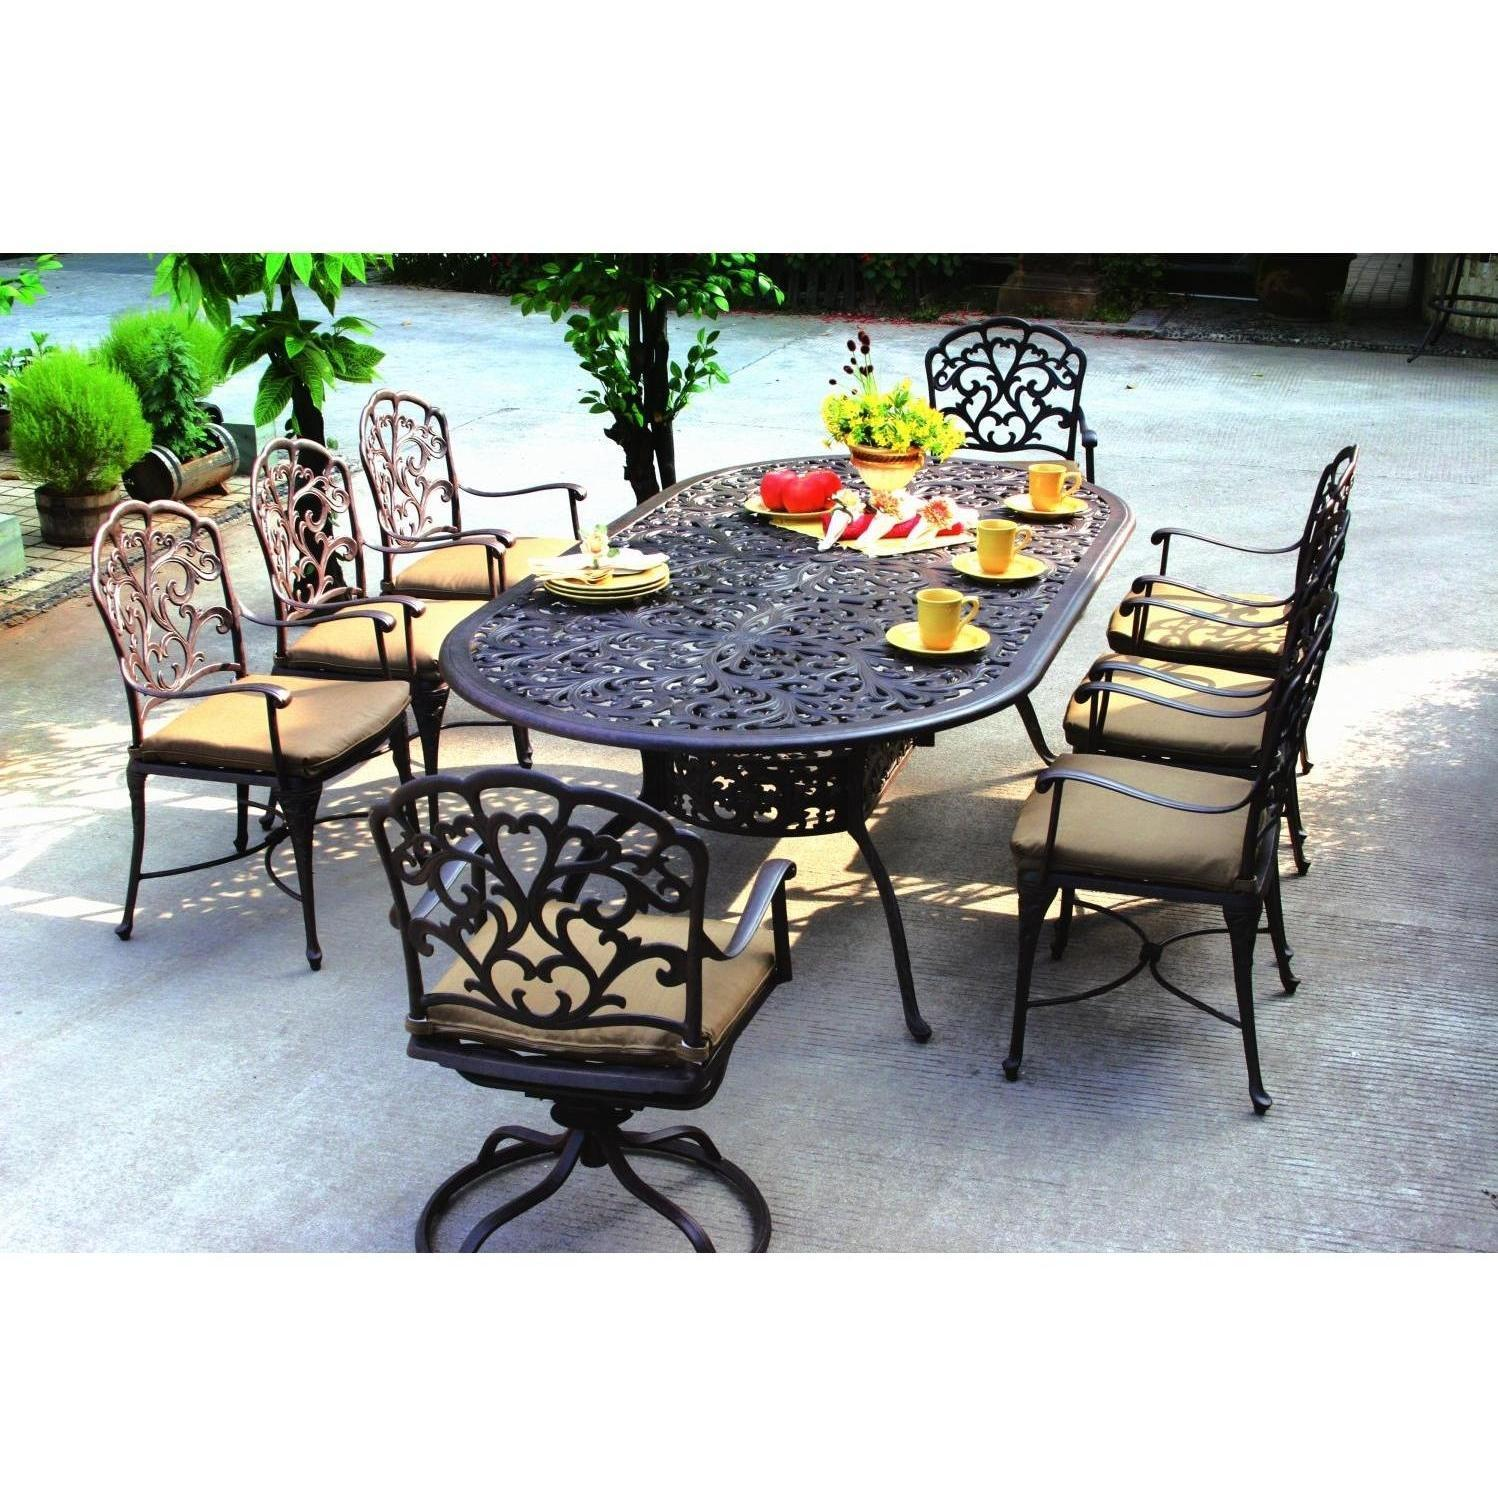 patio dining sets photo - 2